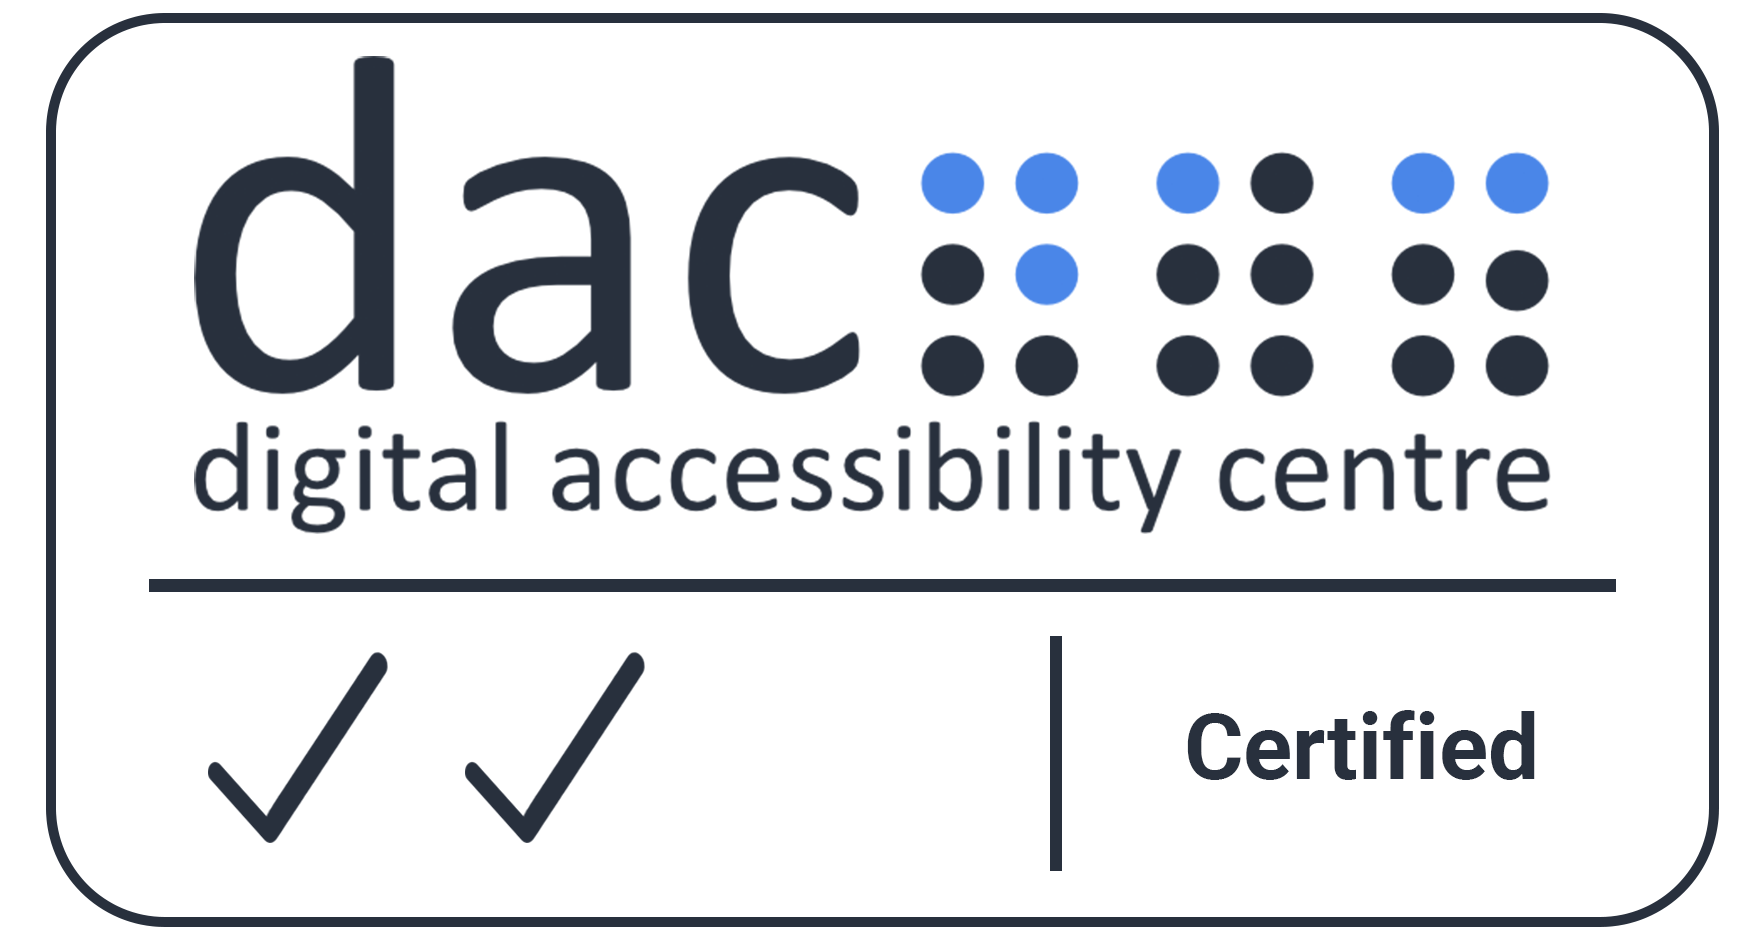 Digital Accessibility Centre Accreditation Certificate